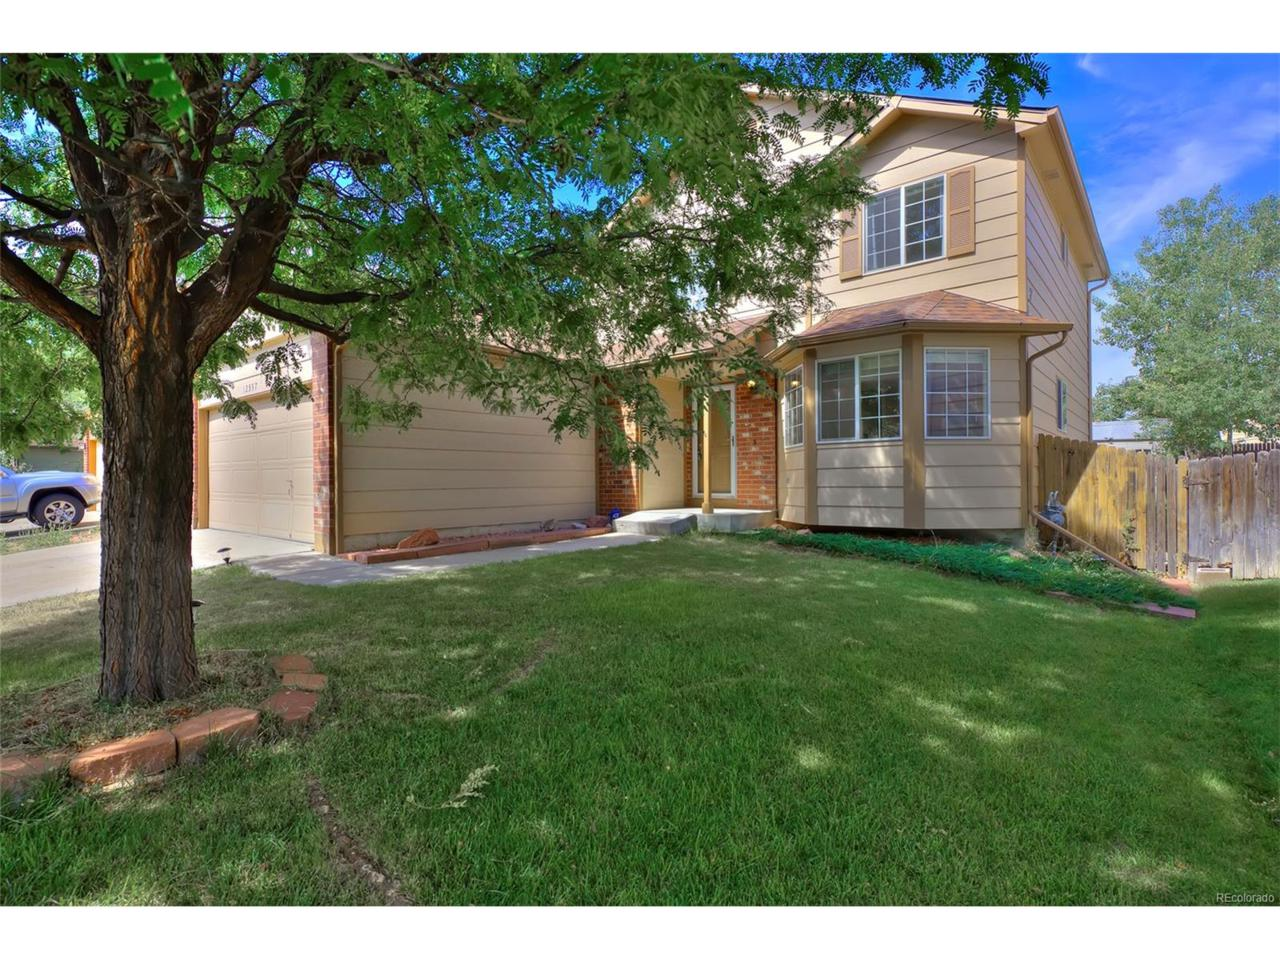 12557 Dale Court, Broomfield, CO 80020 (MLS #4596749) :: 8z Real Estate